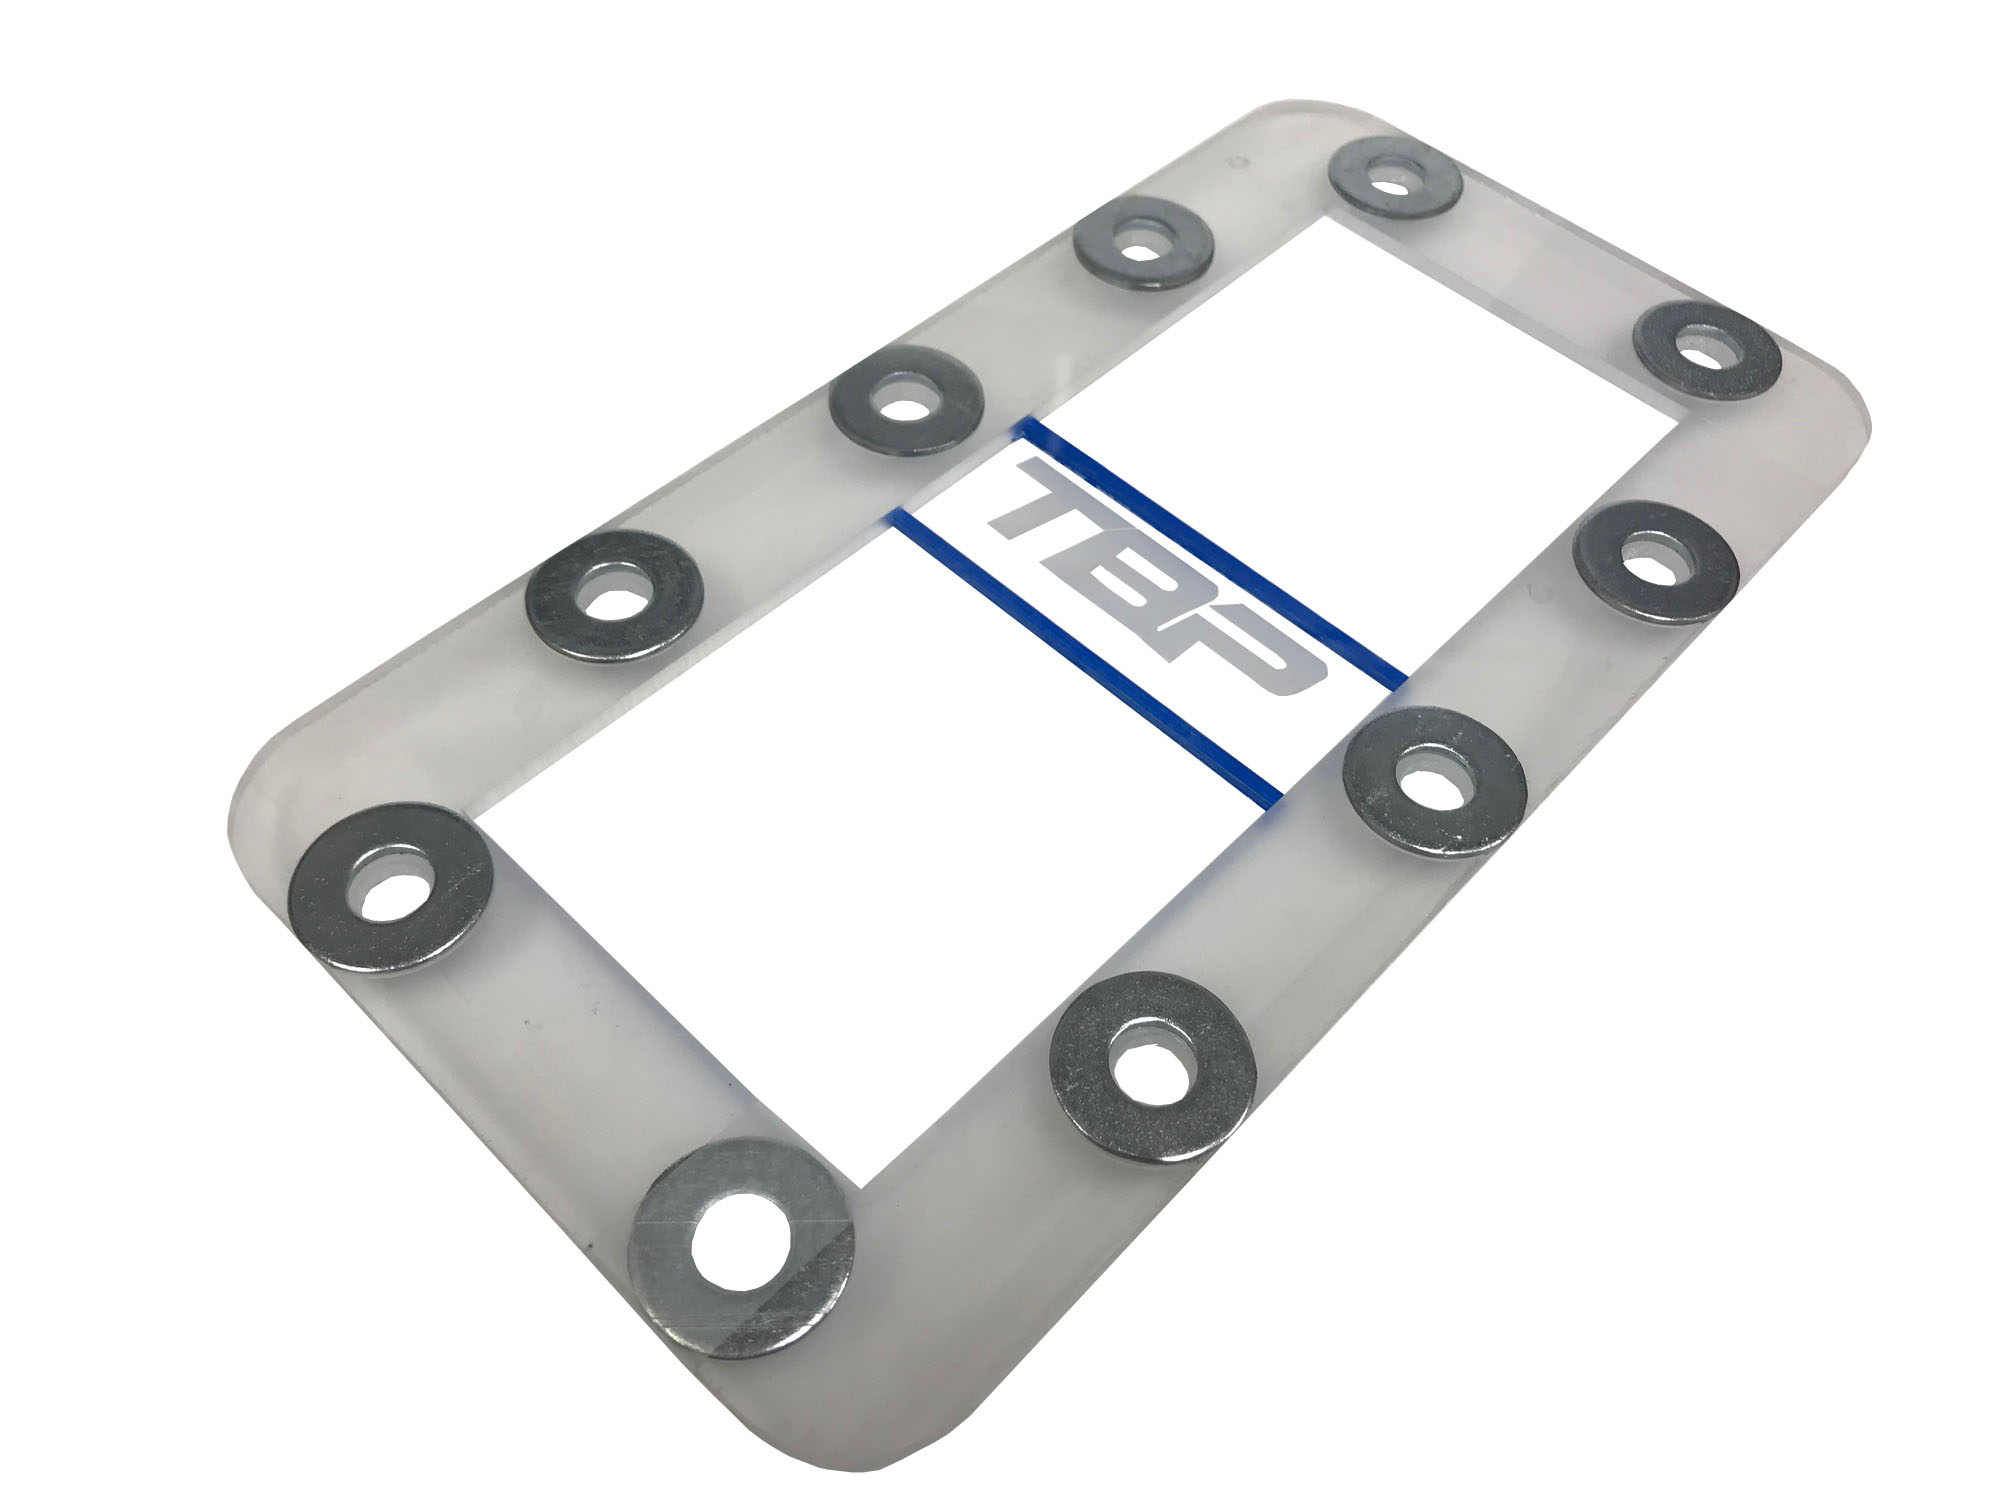 Dana 20 Transfer Case Clear Inspection Cover, New